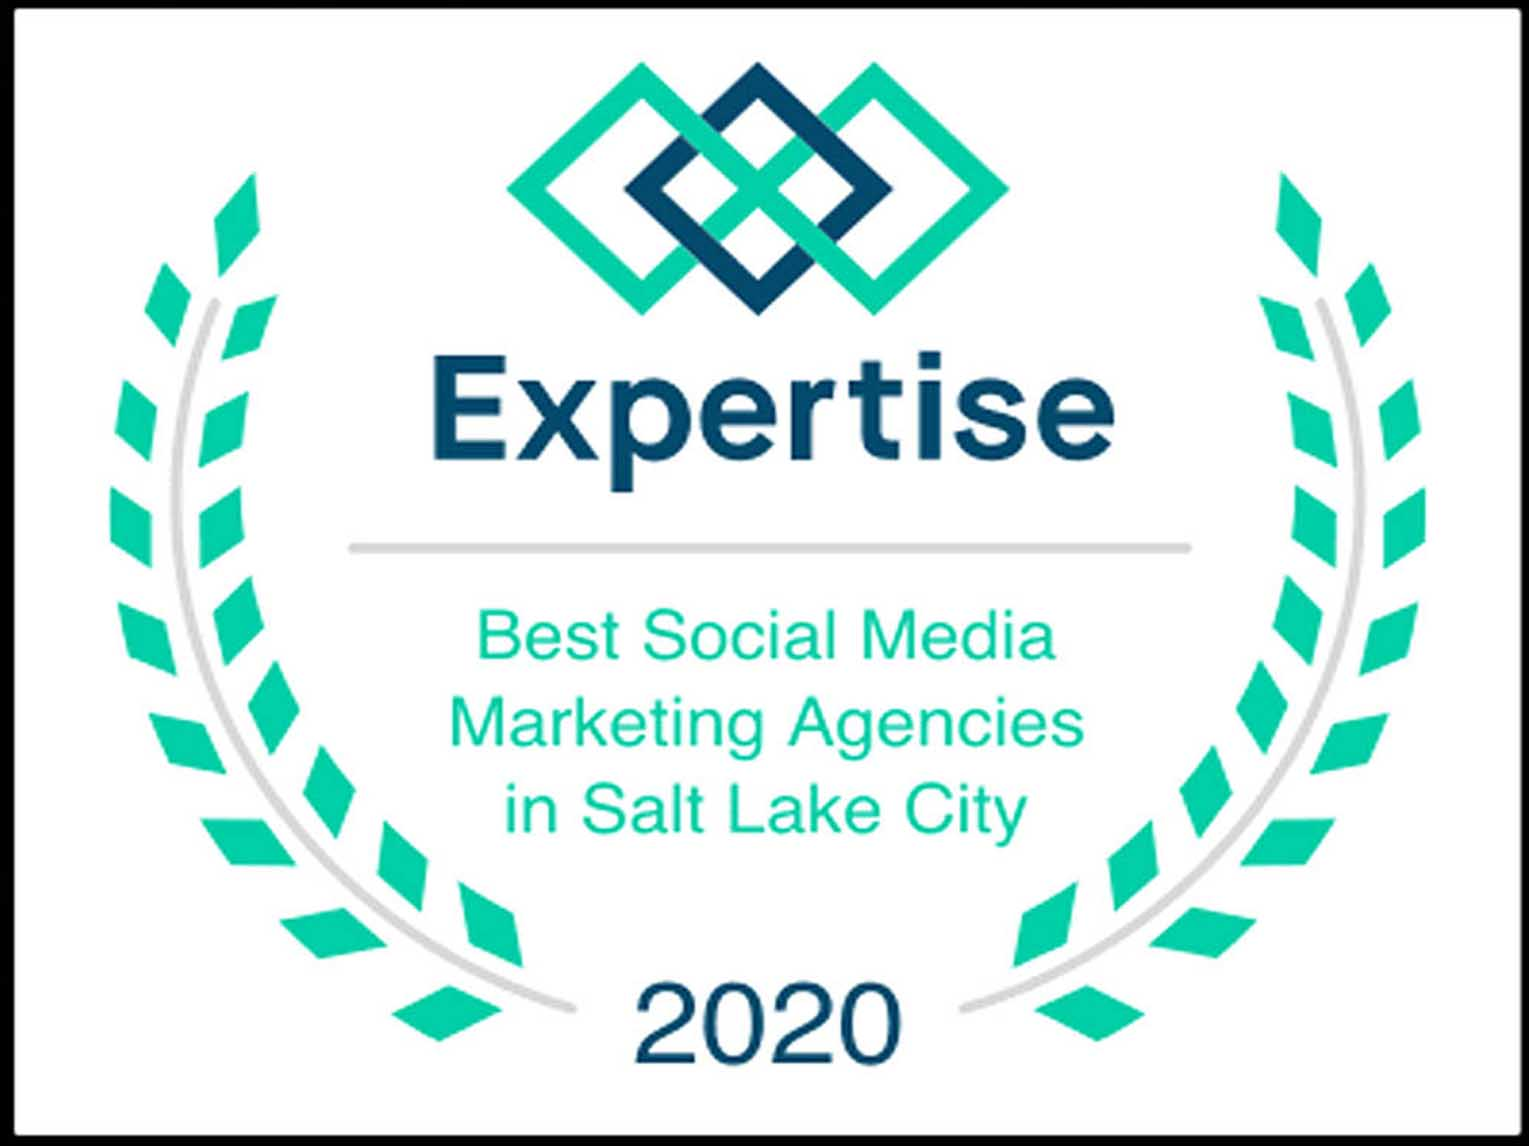 expertise award image give to our digital marketing consulting firm